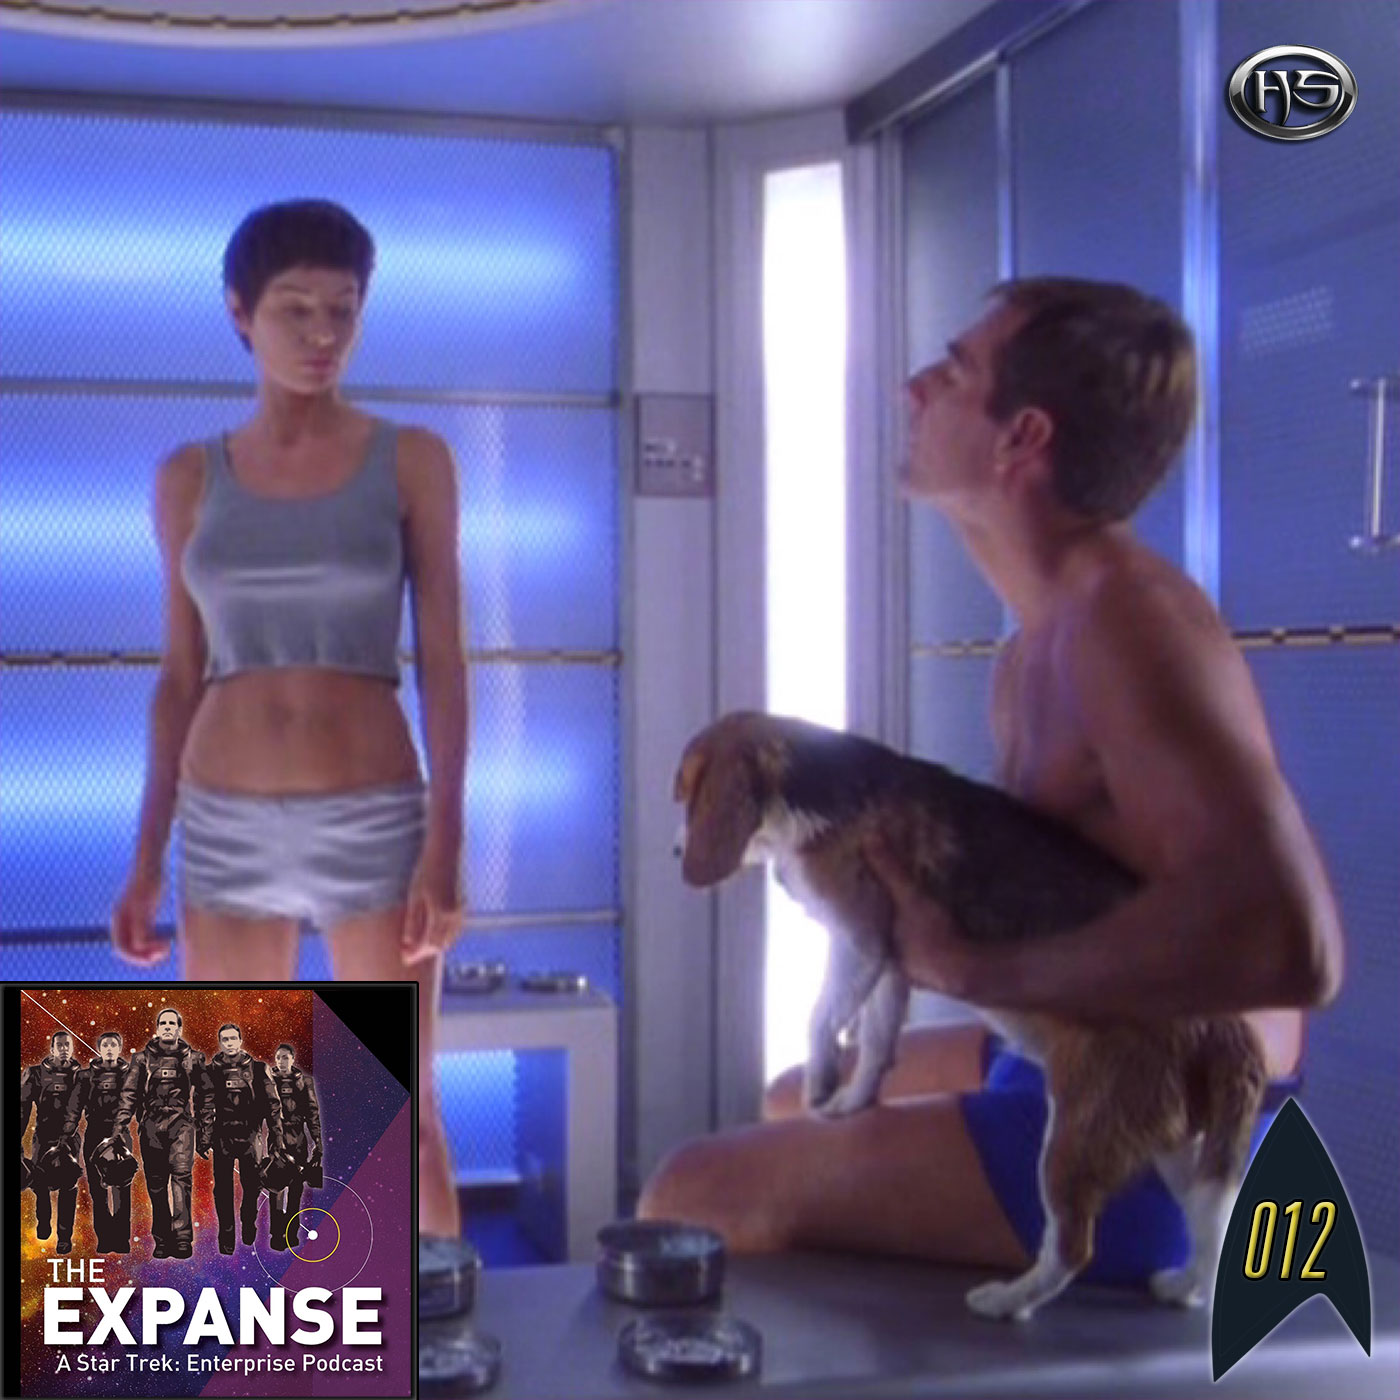 The Expanse Episode 12